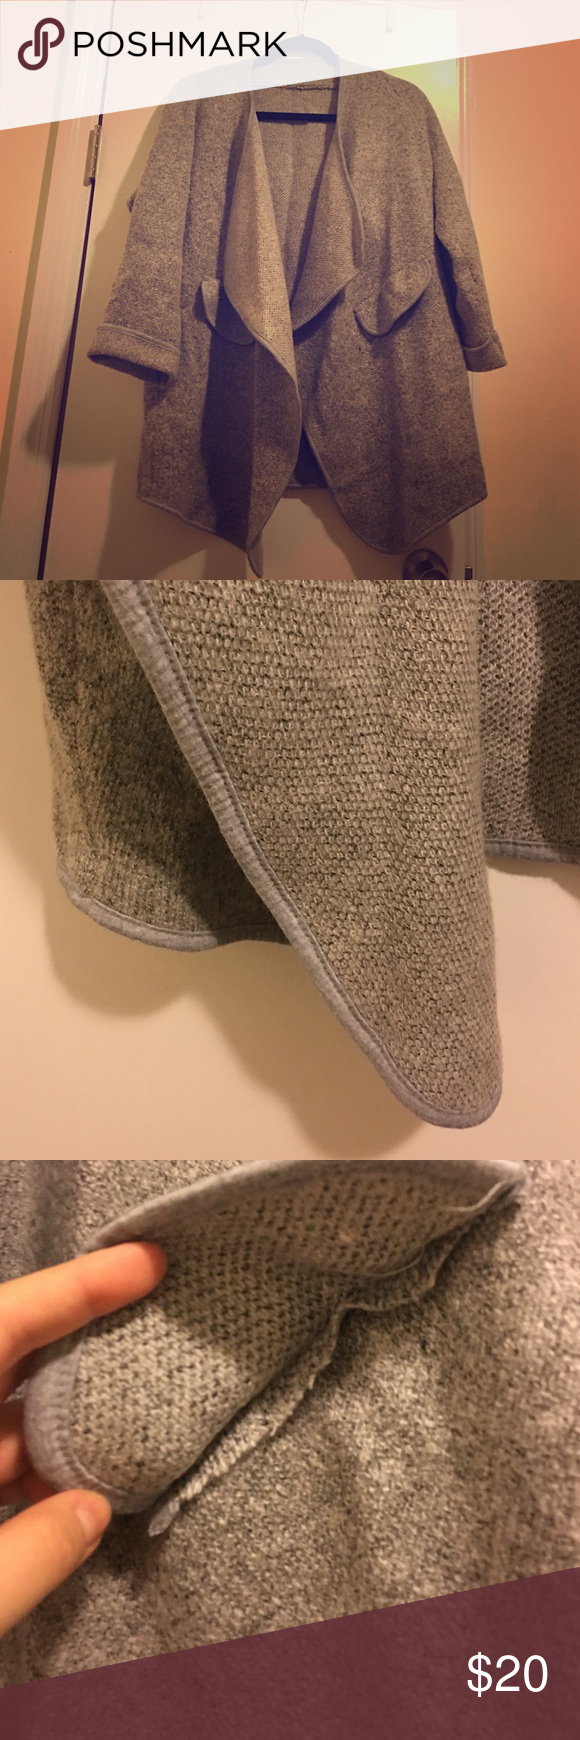 Grey Romwe Cardigan Sweater Never worn ROMWE Sweaters Cardigans